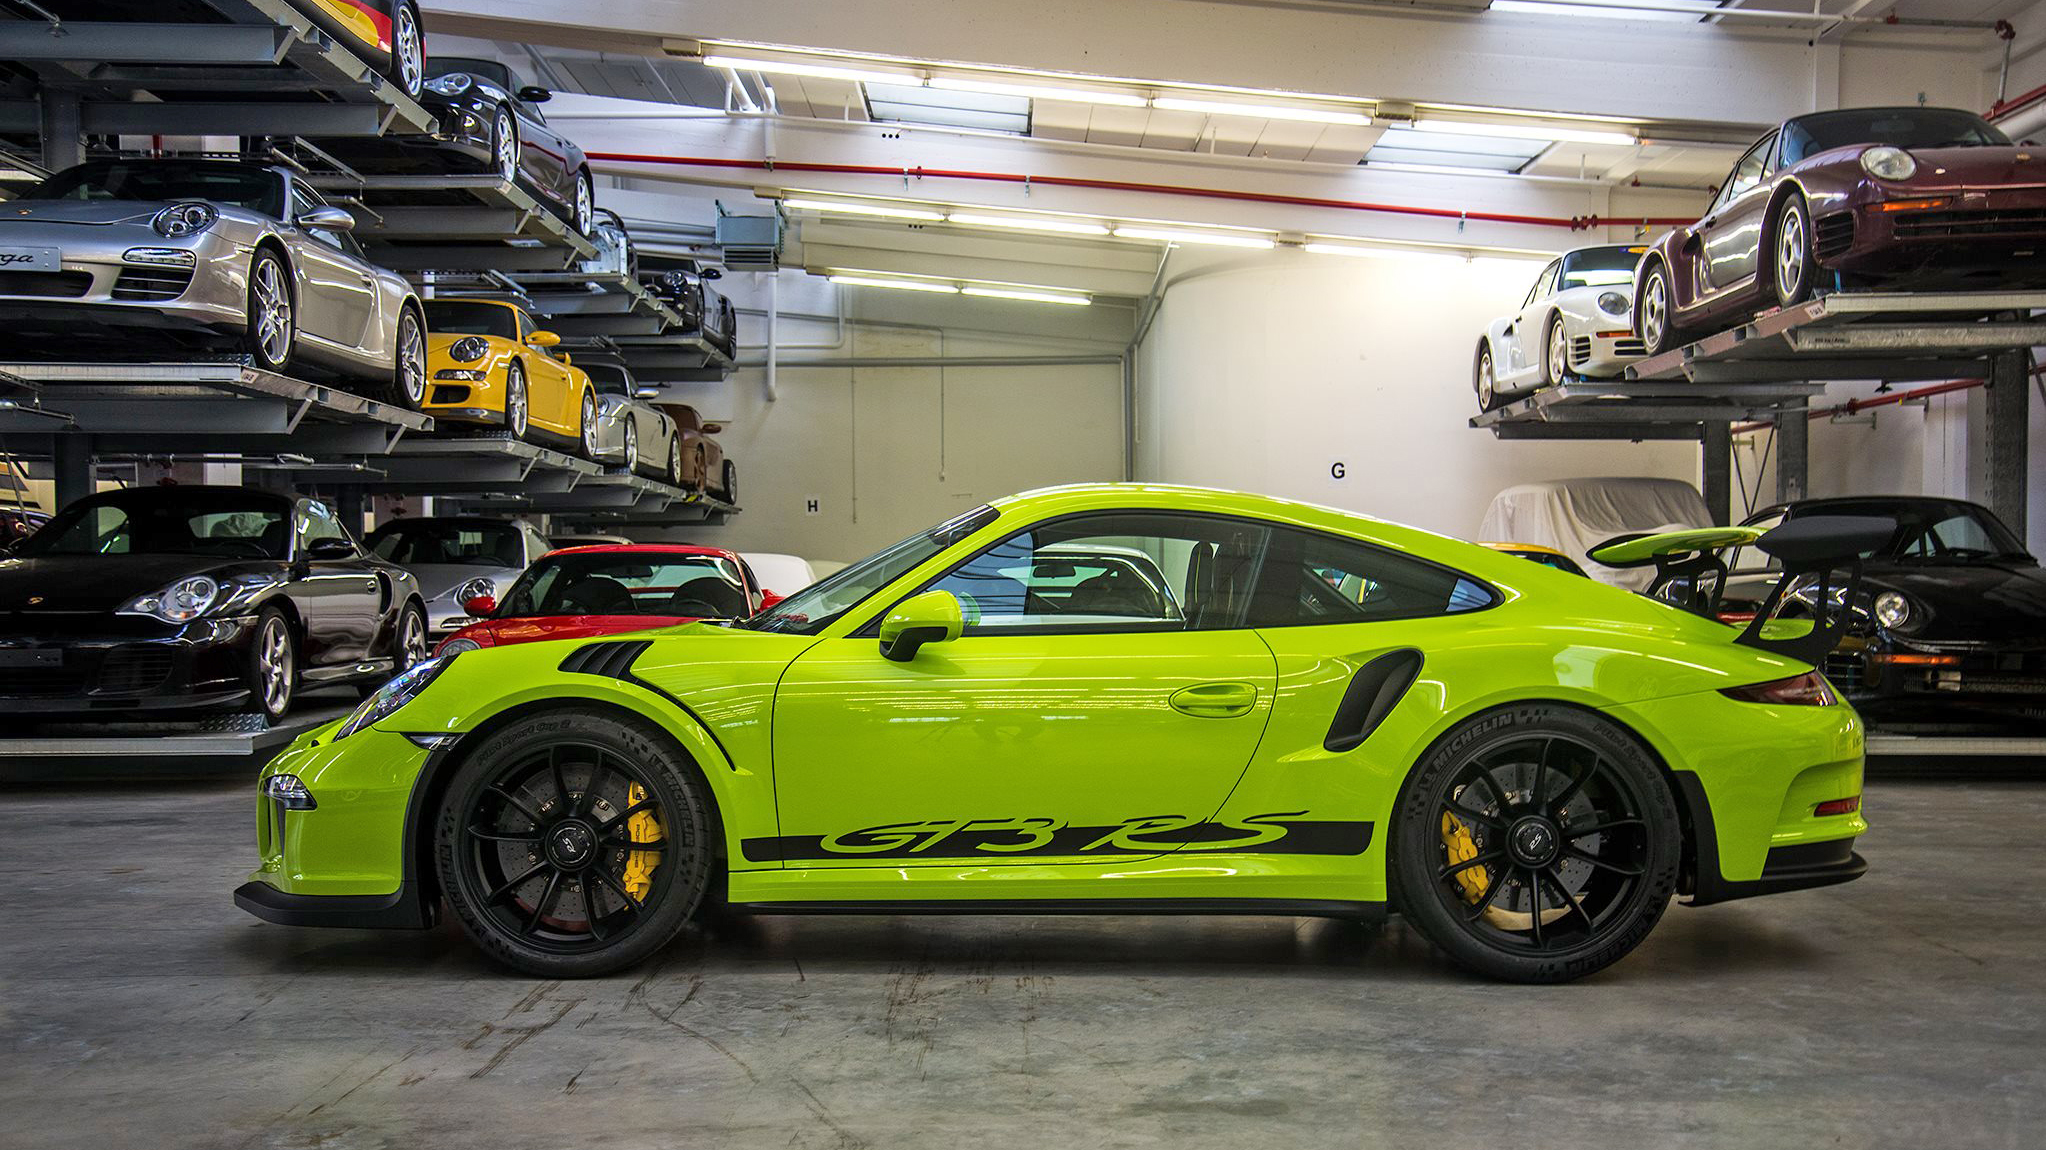 This Is A Lairy Green 911 Gt3 Rs With Those Decals Top Gear